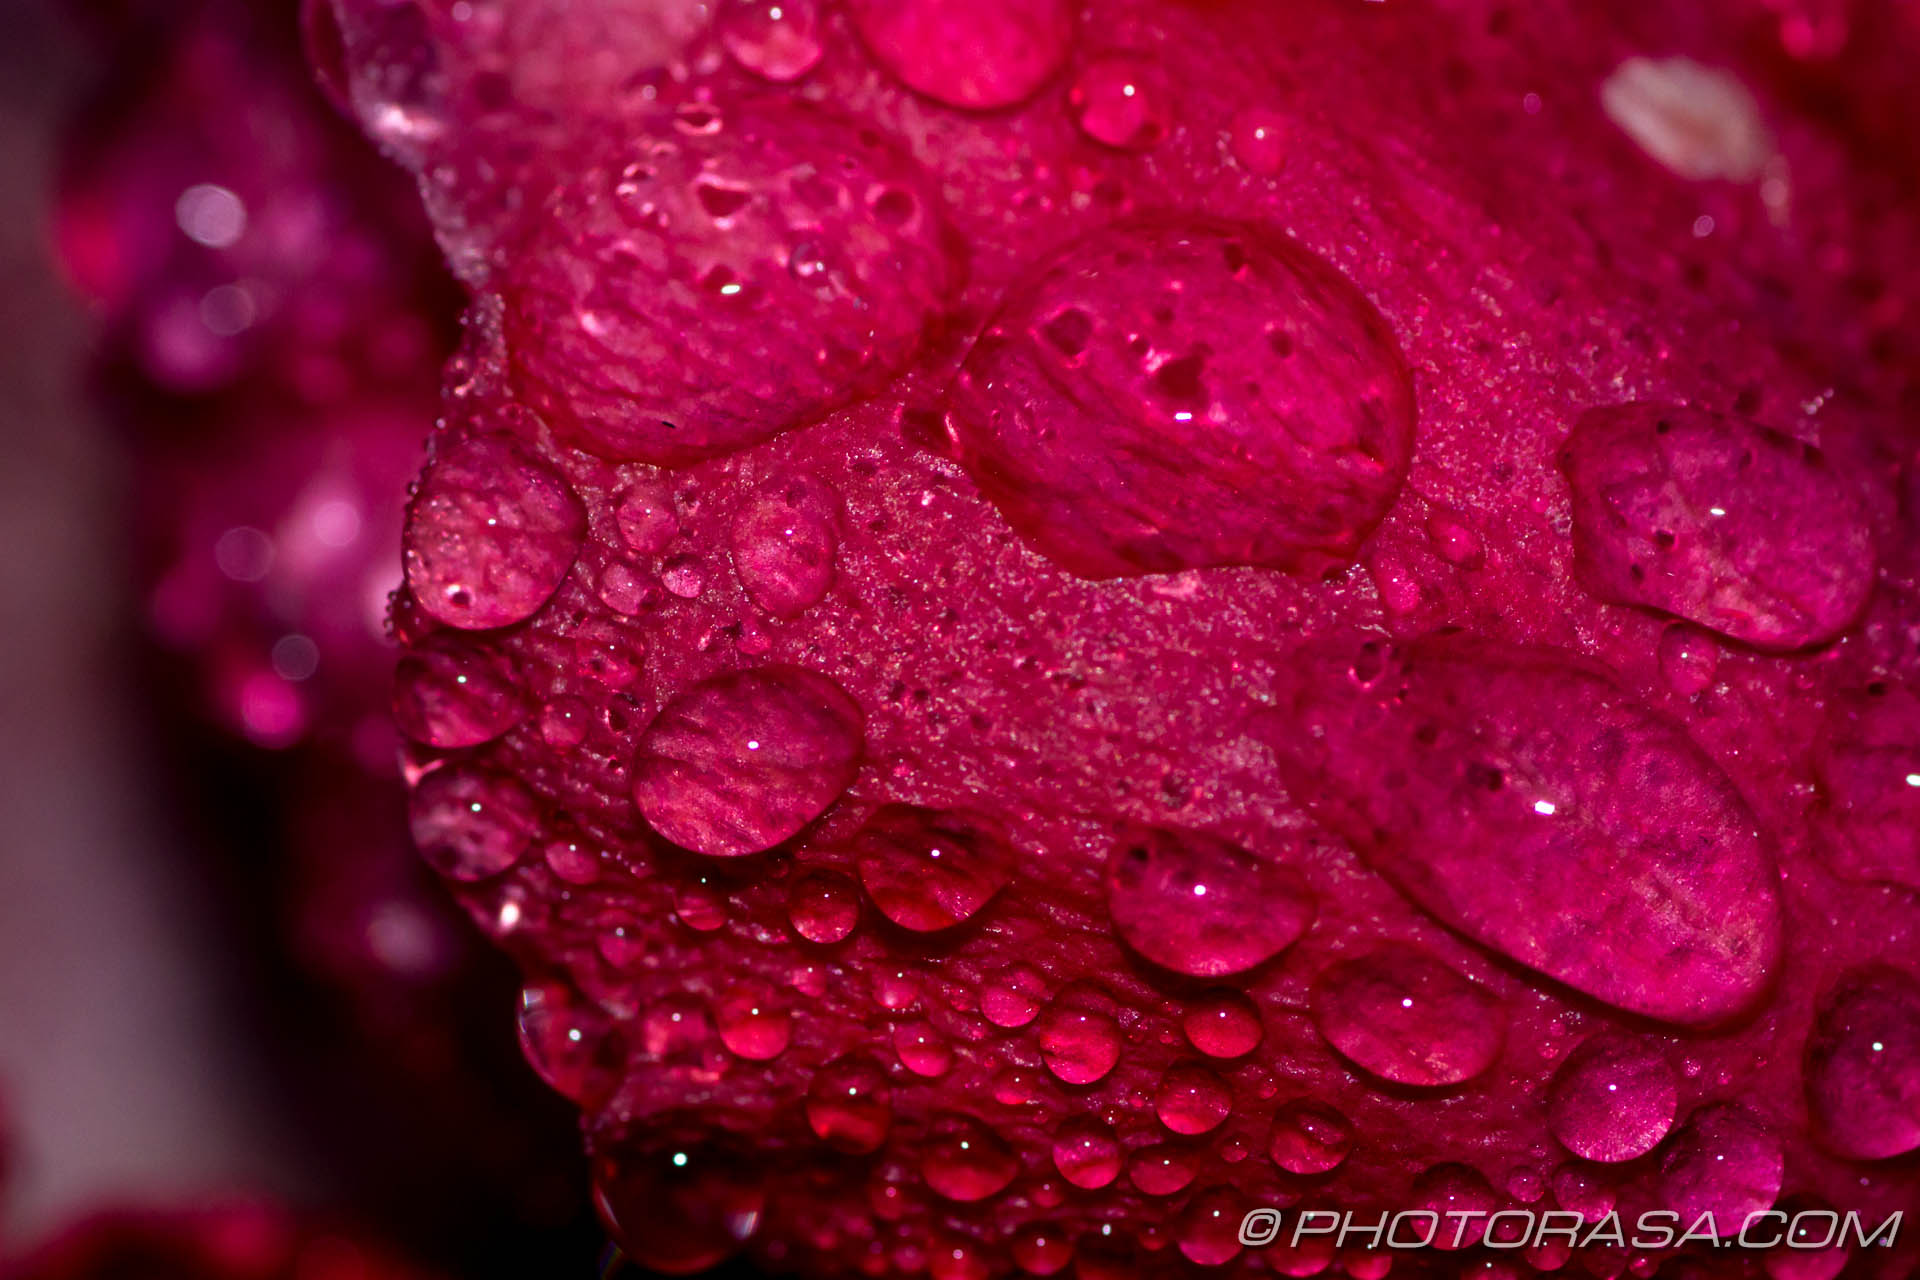 https://photorasa.com/pink-rose-in-the-rain/dewdrop-pattern-on-pink-rose/